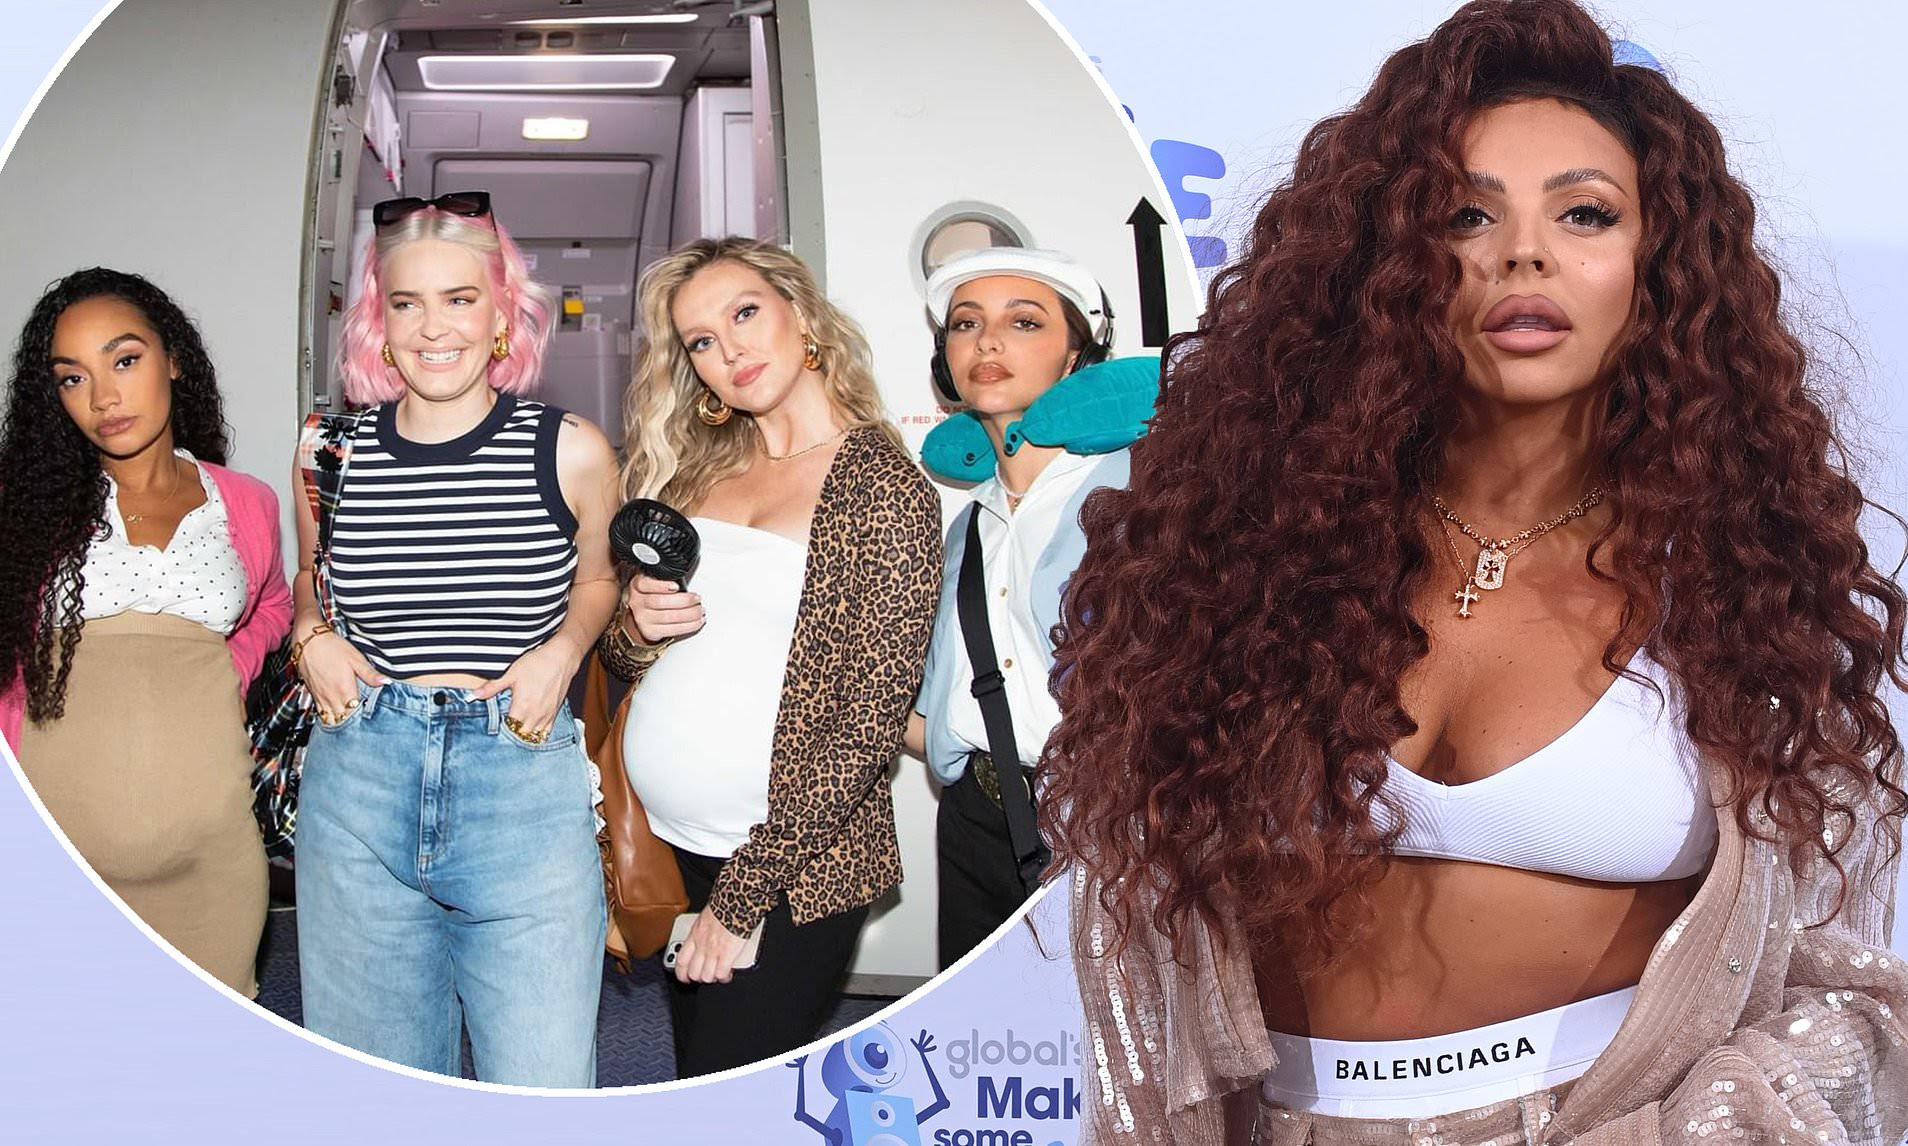 Jesy Nelson unfollowed by Little Mix pals Anne-Marie, MNEK and Paloma Faith amid blackfishing row